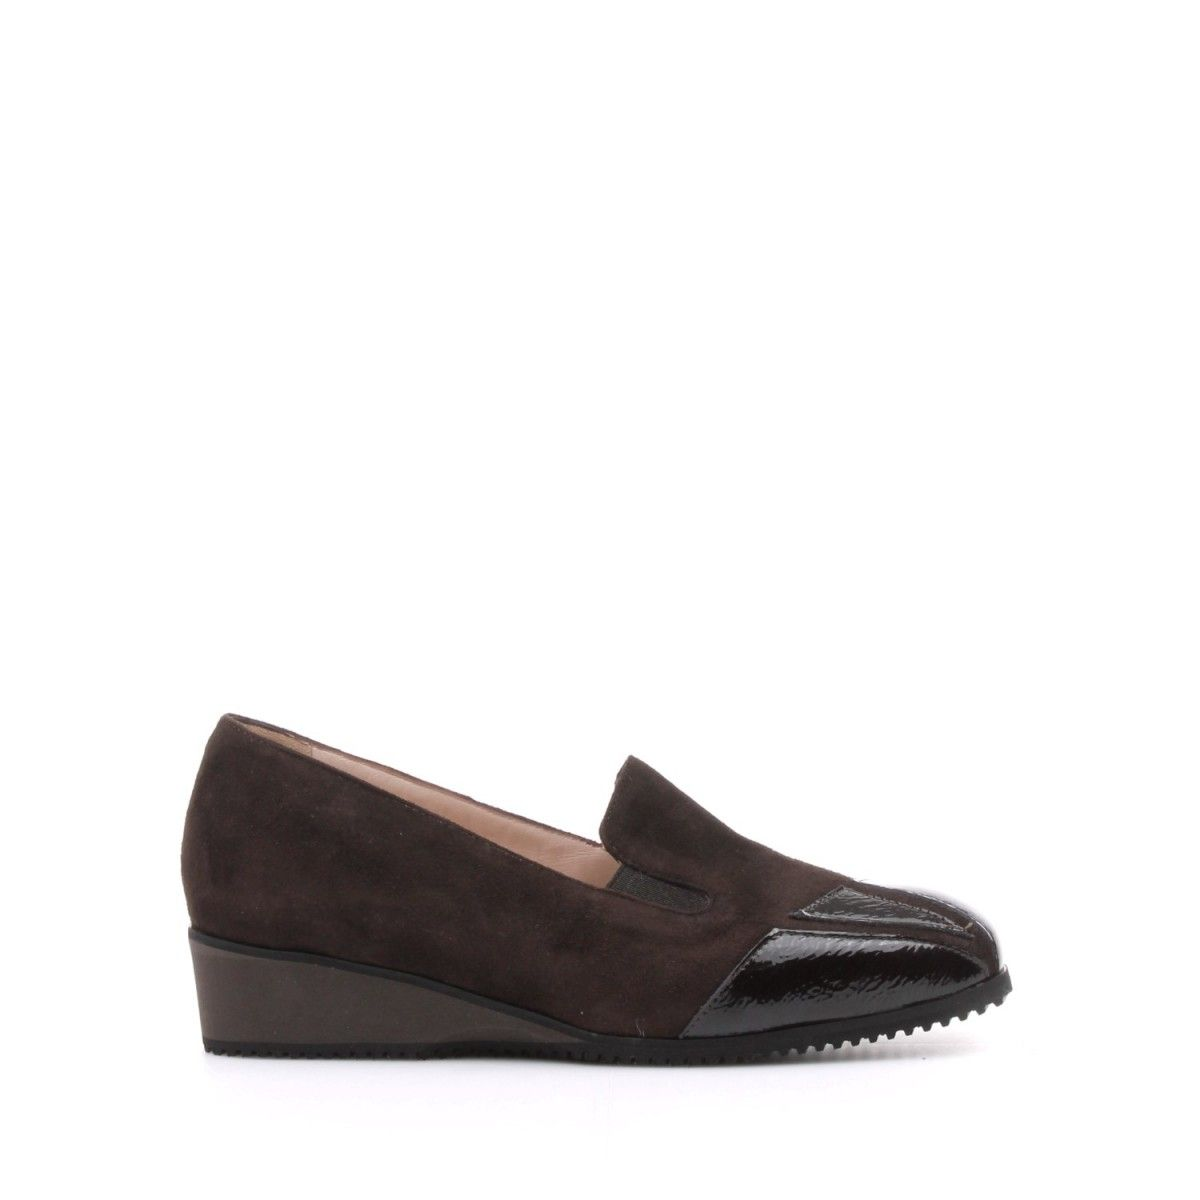 Cult - Kiss slip on 741 lace/leather/brush